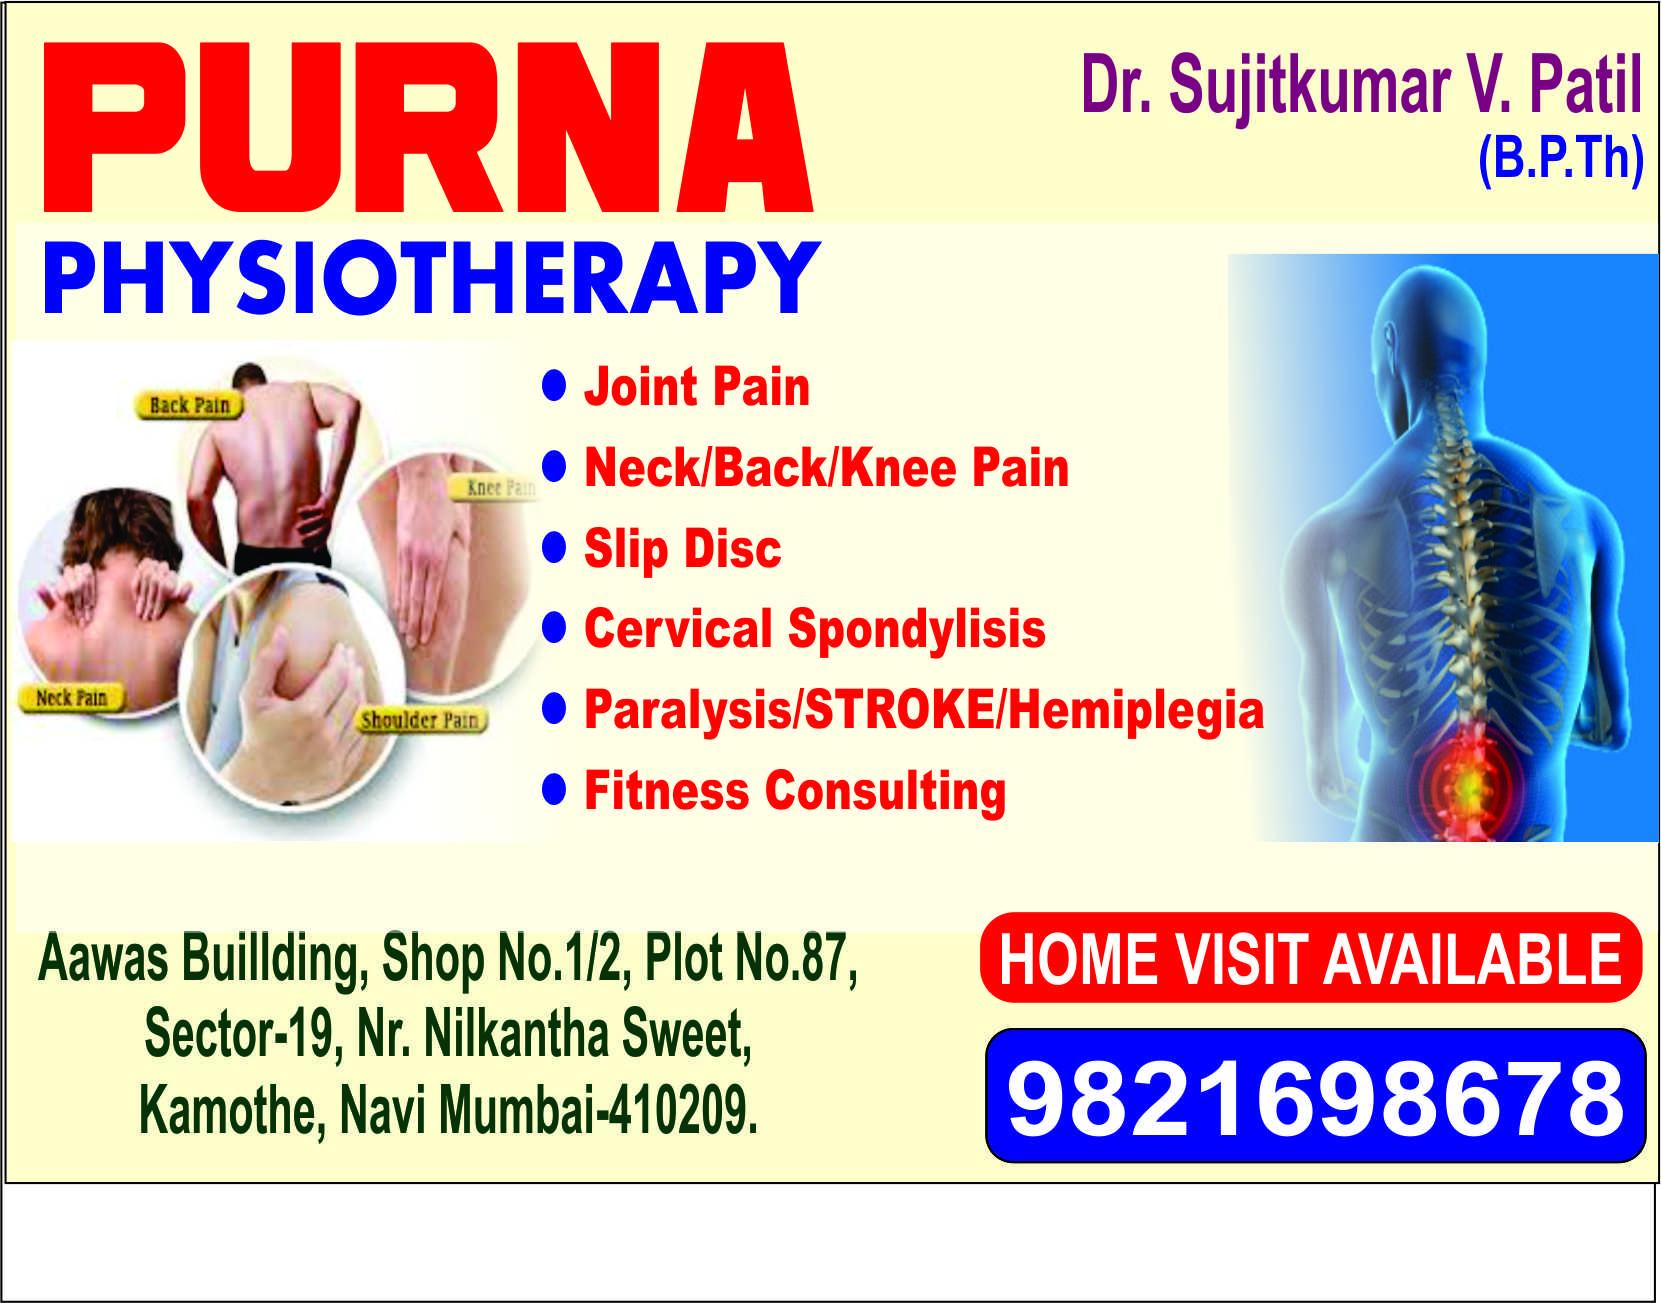 Purna Physiotherapy Clinic